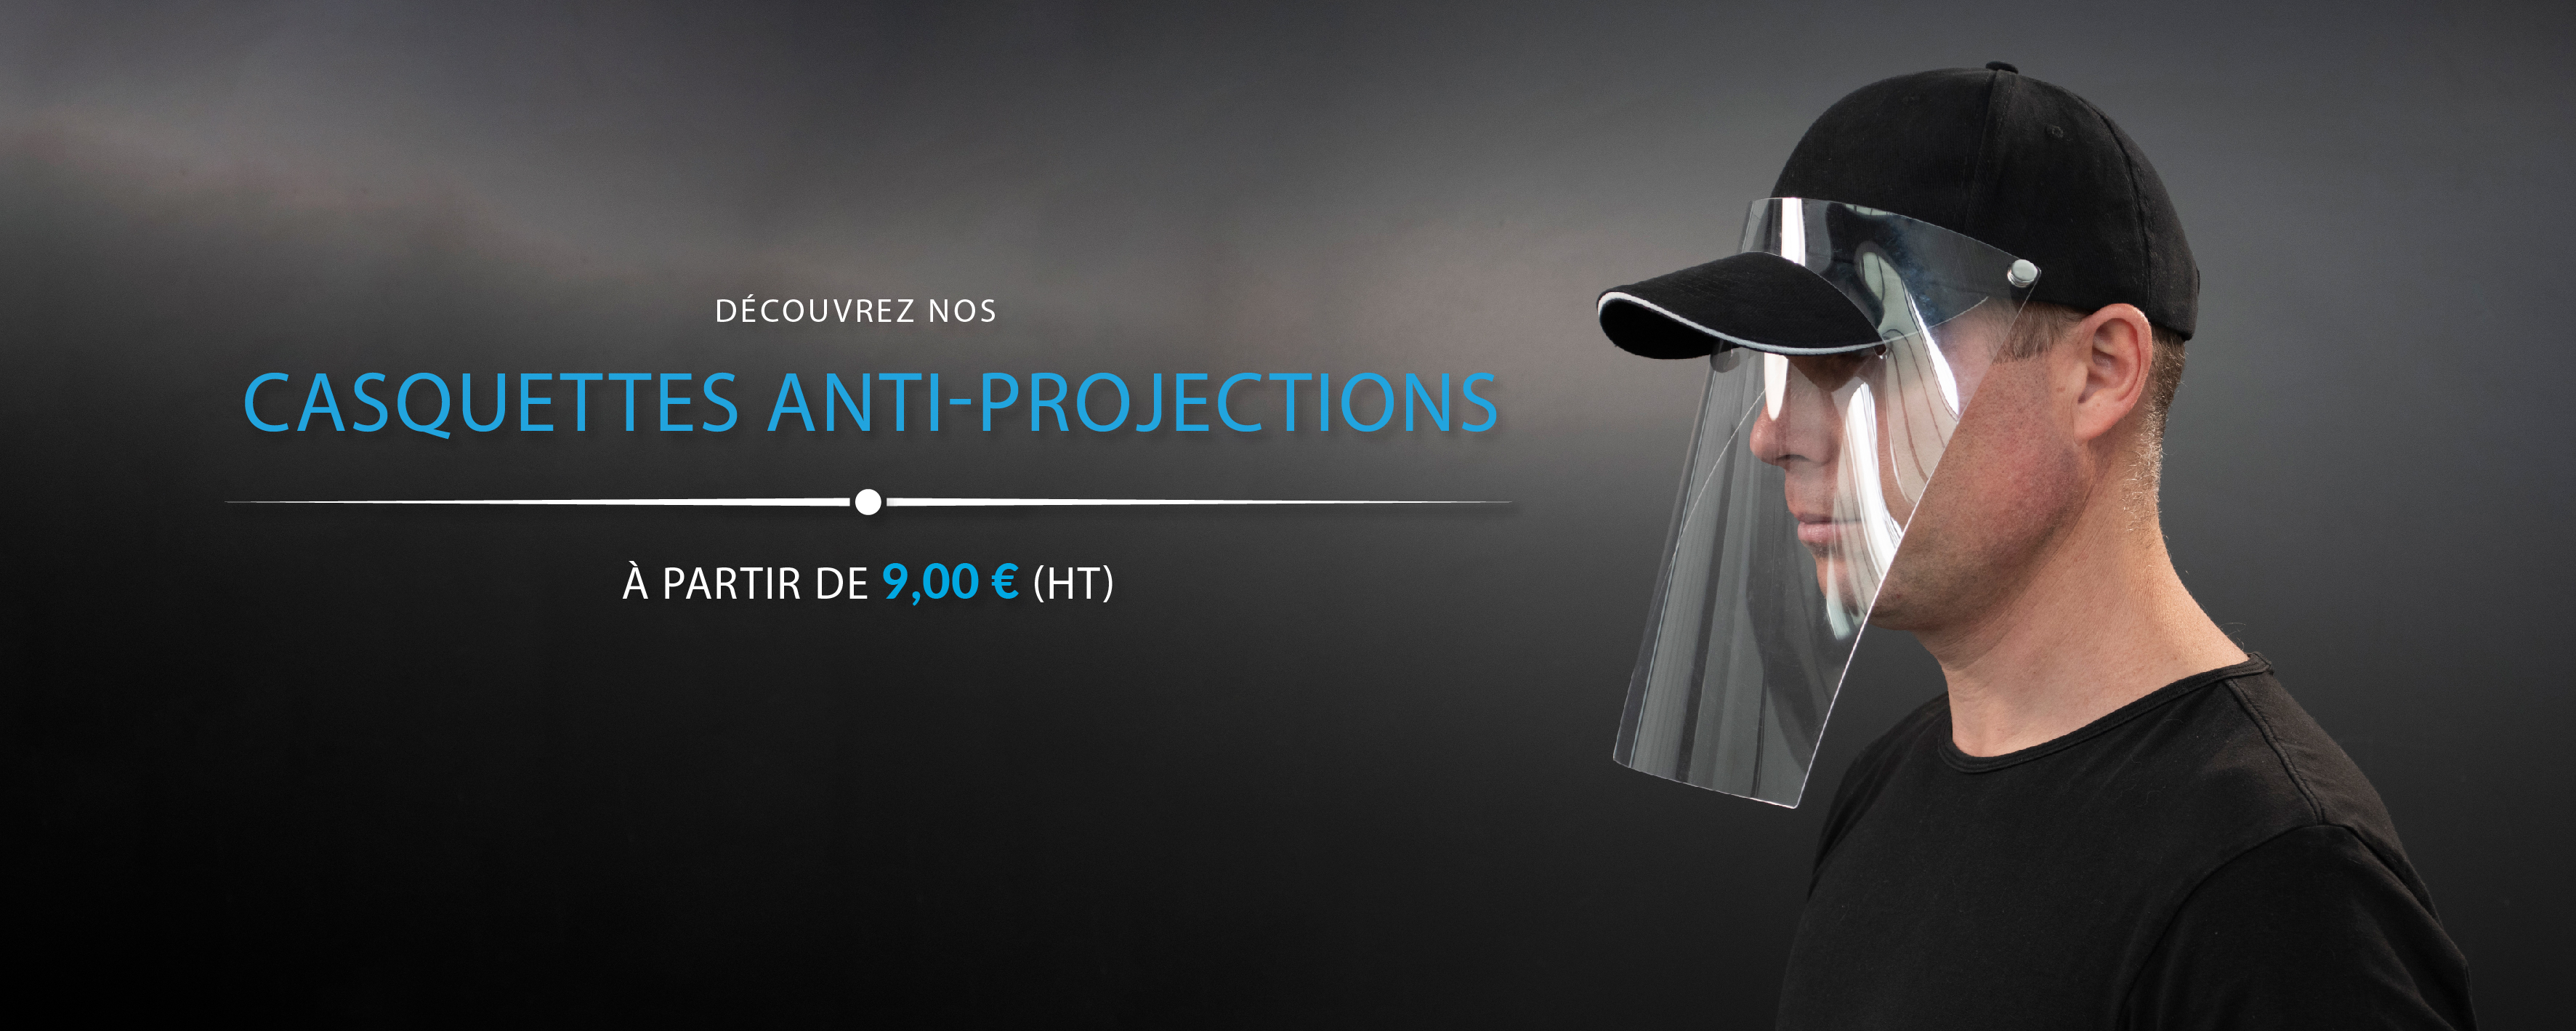 Casquettes antiprojections